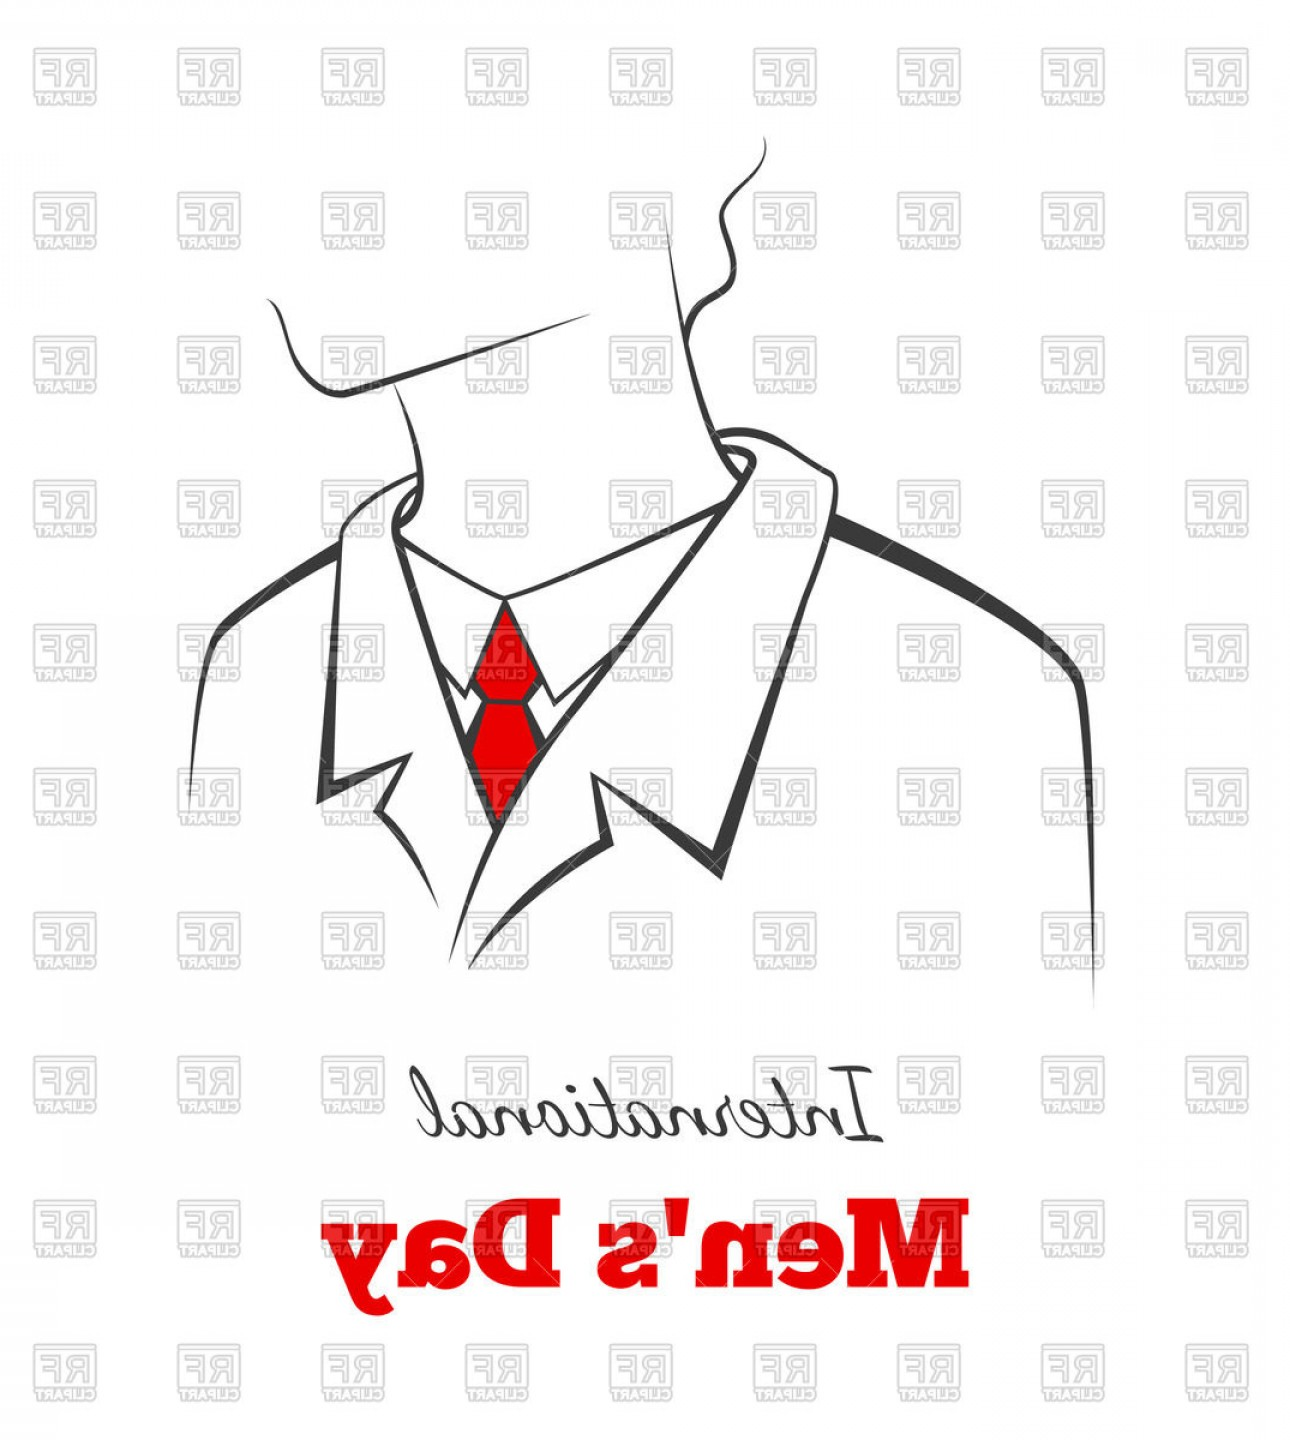 Card Suits Vector Outlines: Outline Of Man In Suit And Red Tie International Mans Day Card Vector Clipart